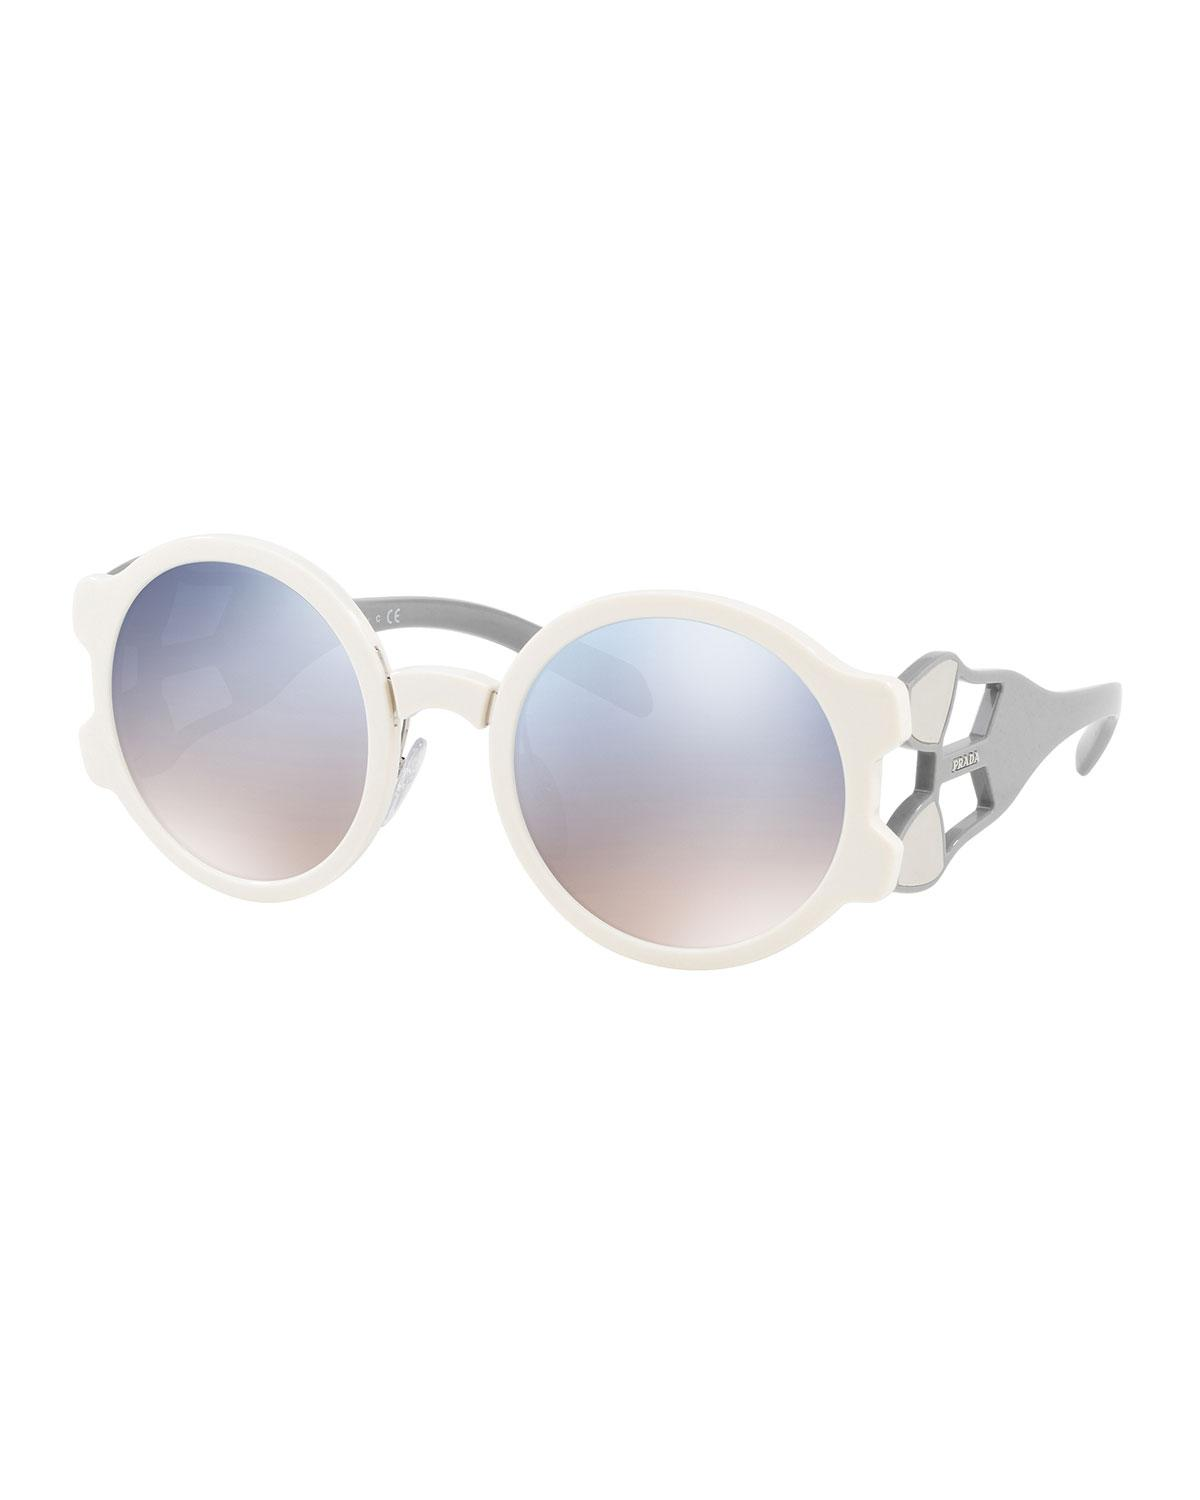 58d18f850e9a Prada Round Mirrored Sunglasses With Cutout Temples In Black | ModeSens